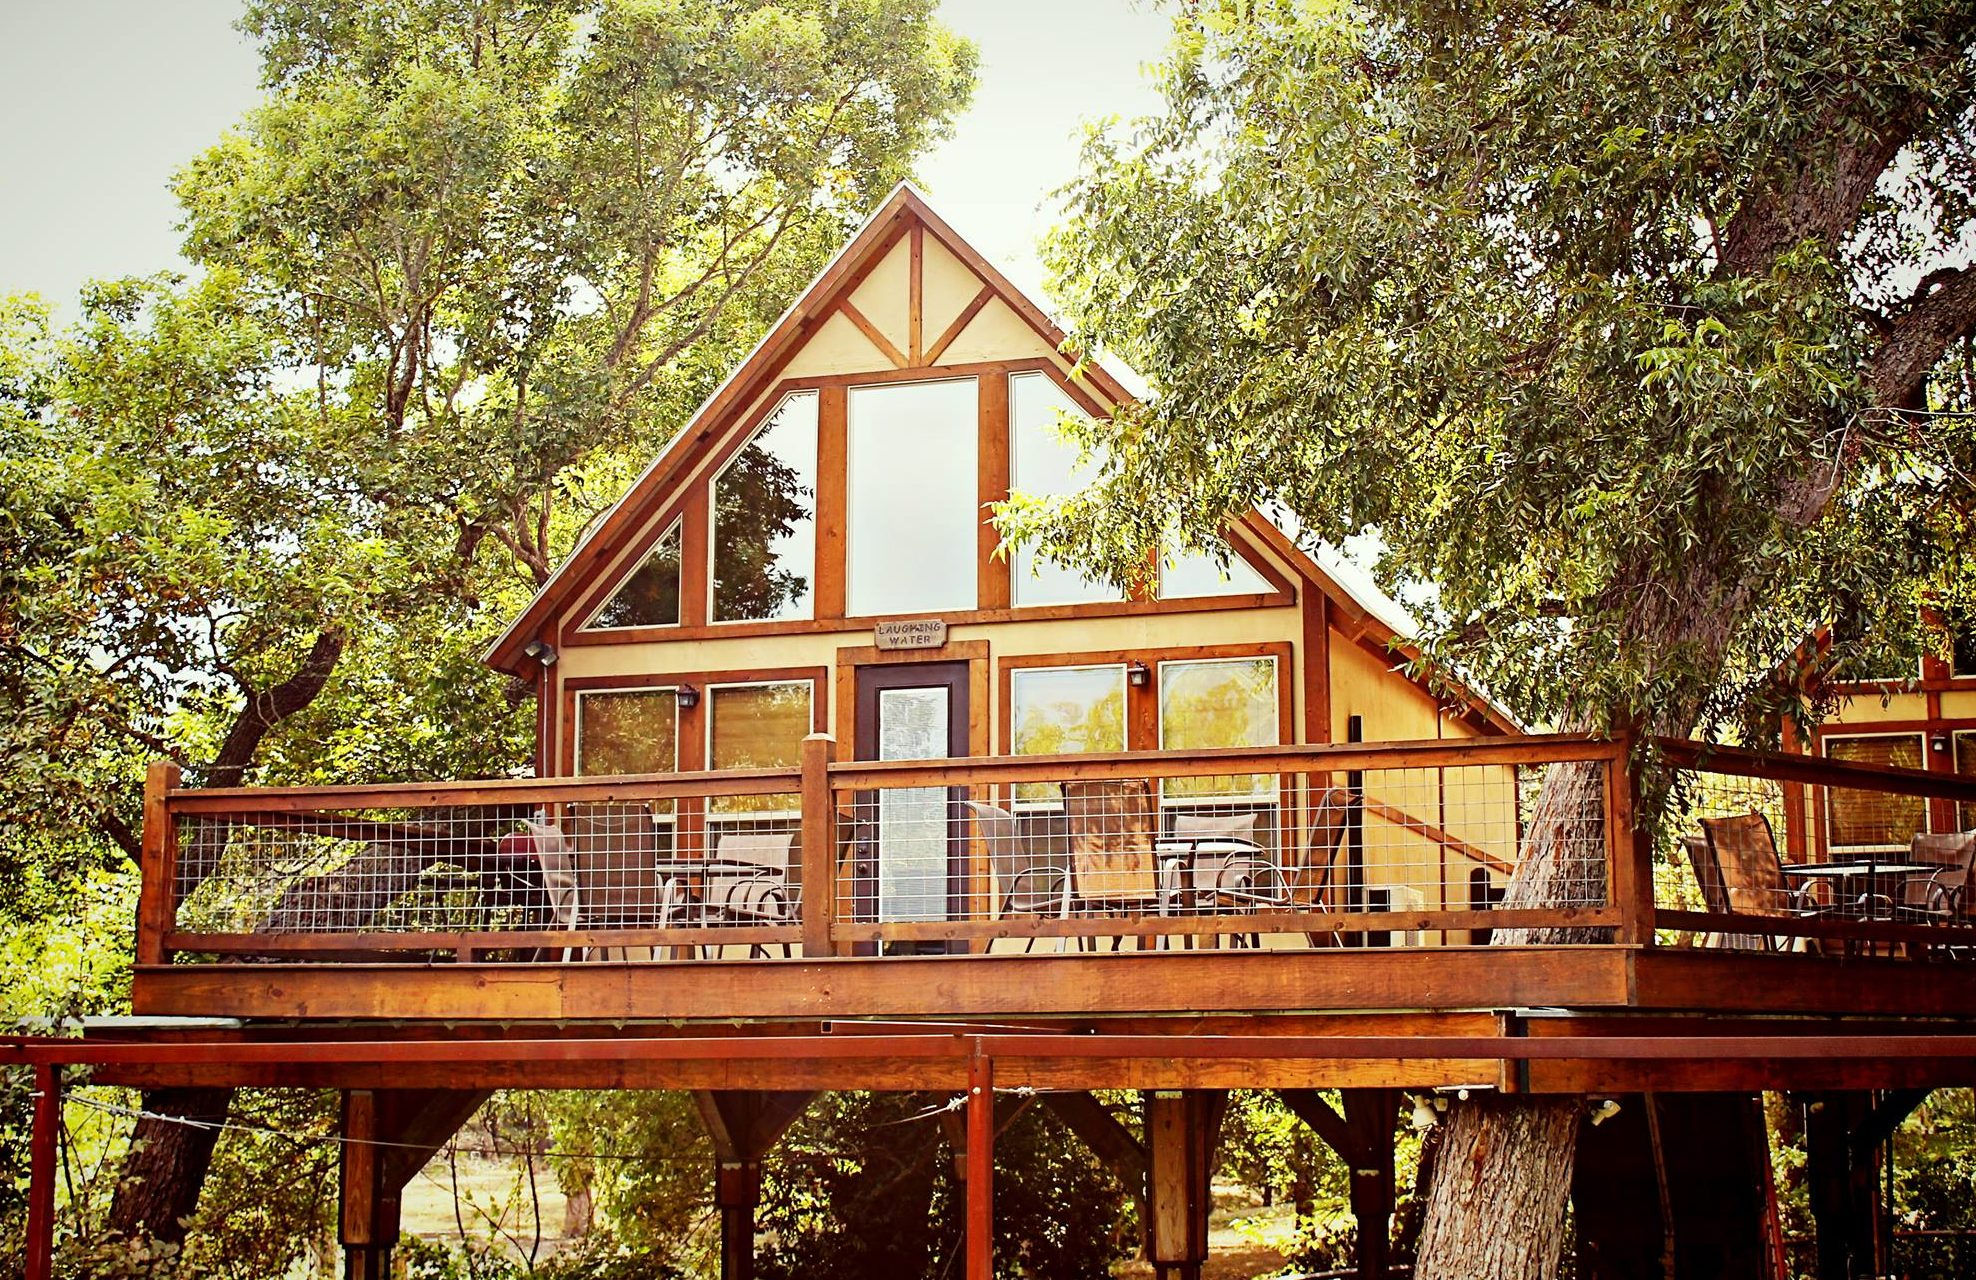 wimberley d and oaks rentals wedding equine texas farm vacation s vintage lodging rooms venue cabin in cabins